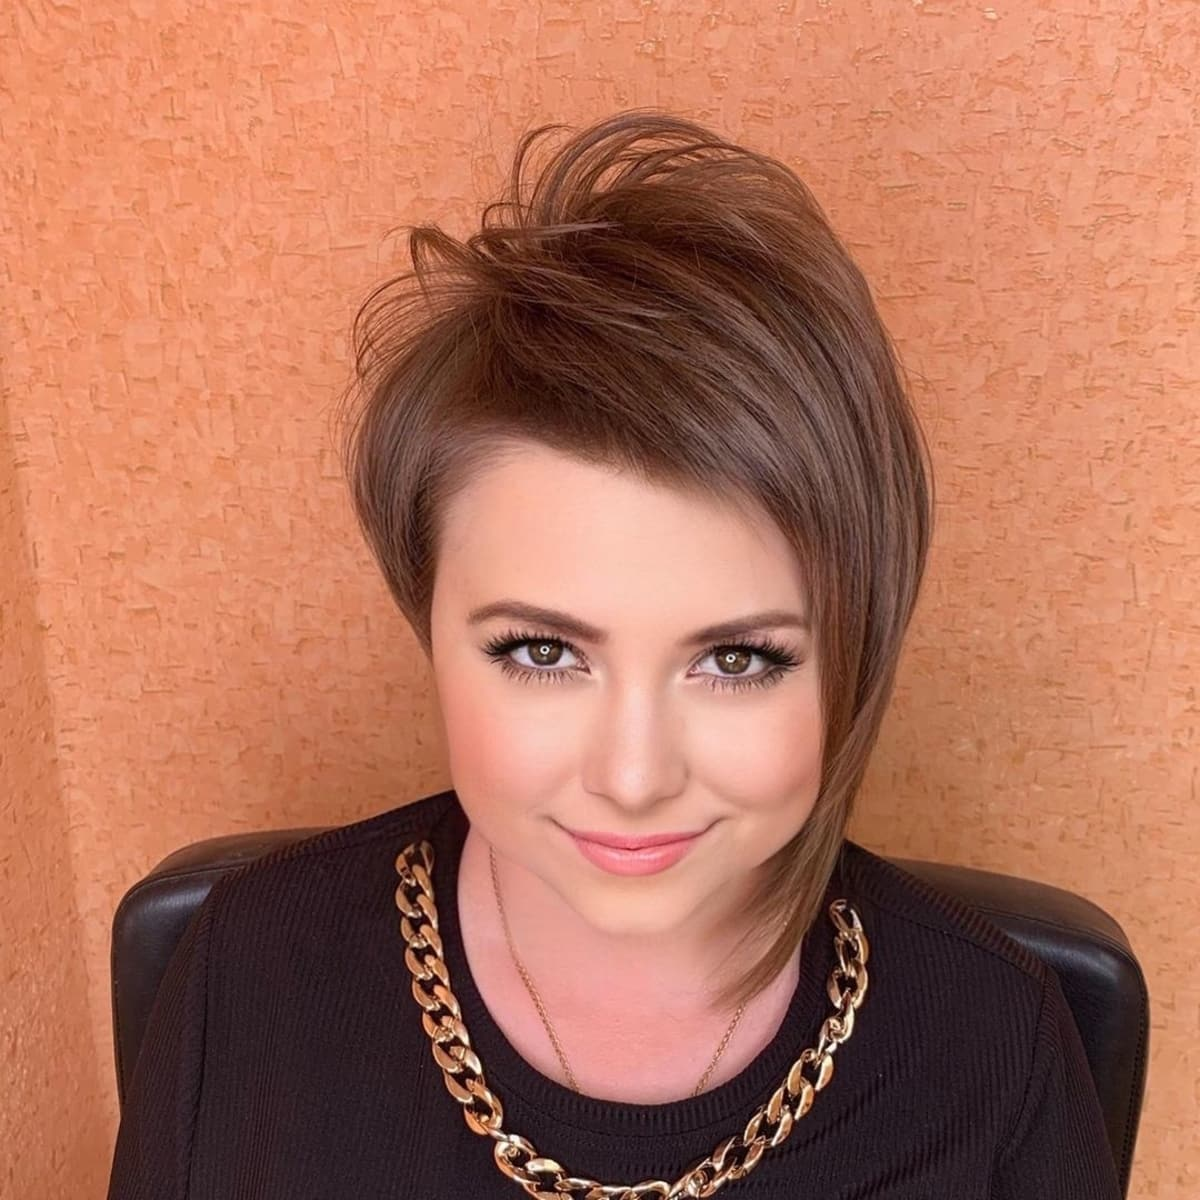 These 23 Short Shaggy Bob Haircuts Are The On-Trend Look Right Now